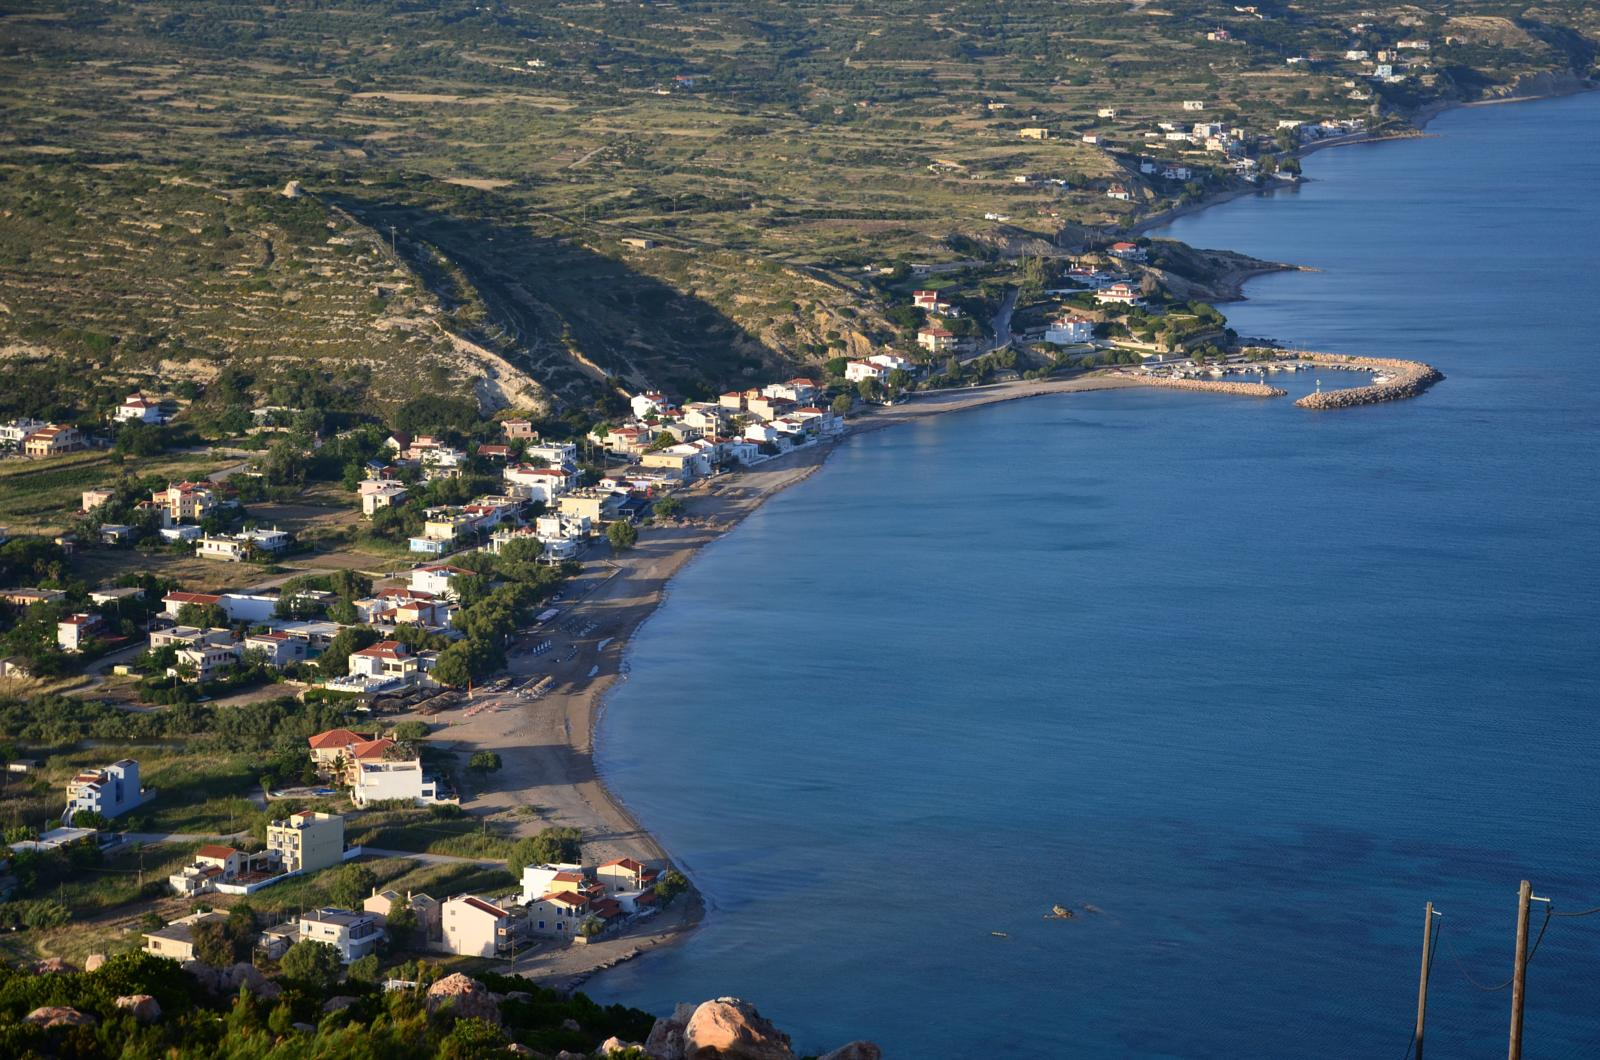 Photo of Chios island, top of Prophet Ilias Hill